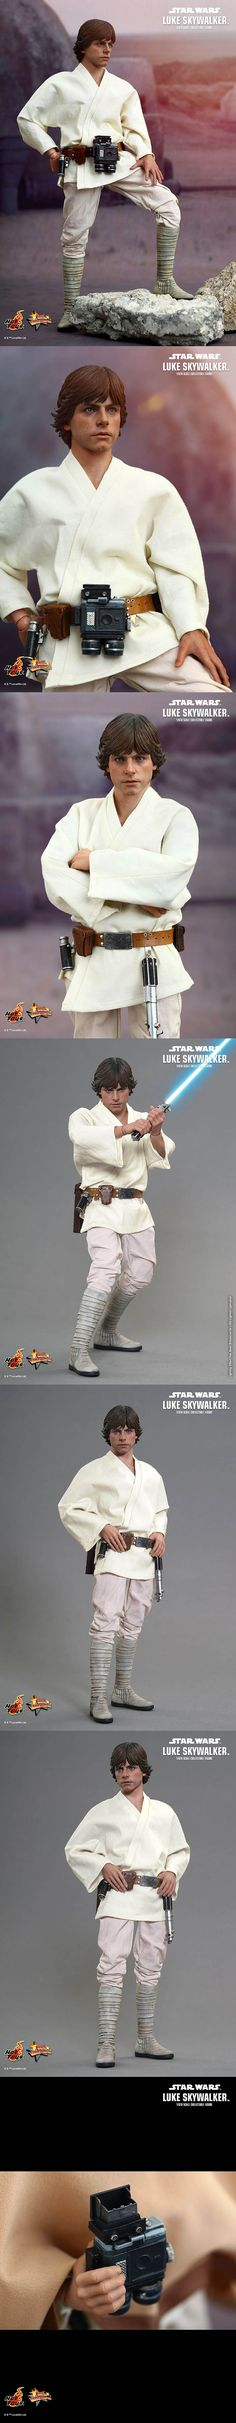 [Star Wars: Episode IV A New Hope: 1/6th scale Luke Skywalker Collectible Figure ]